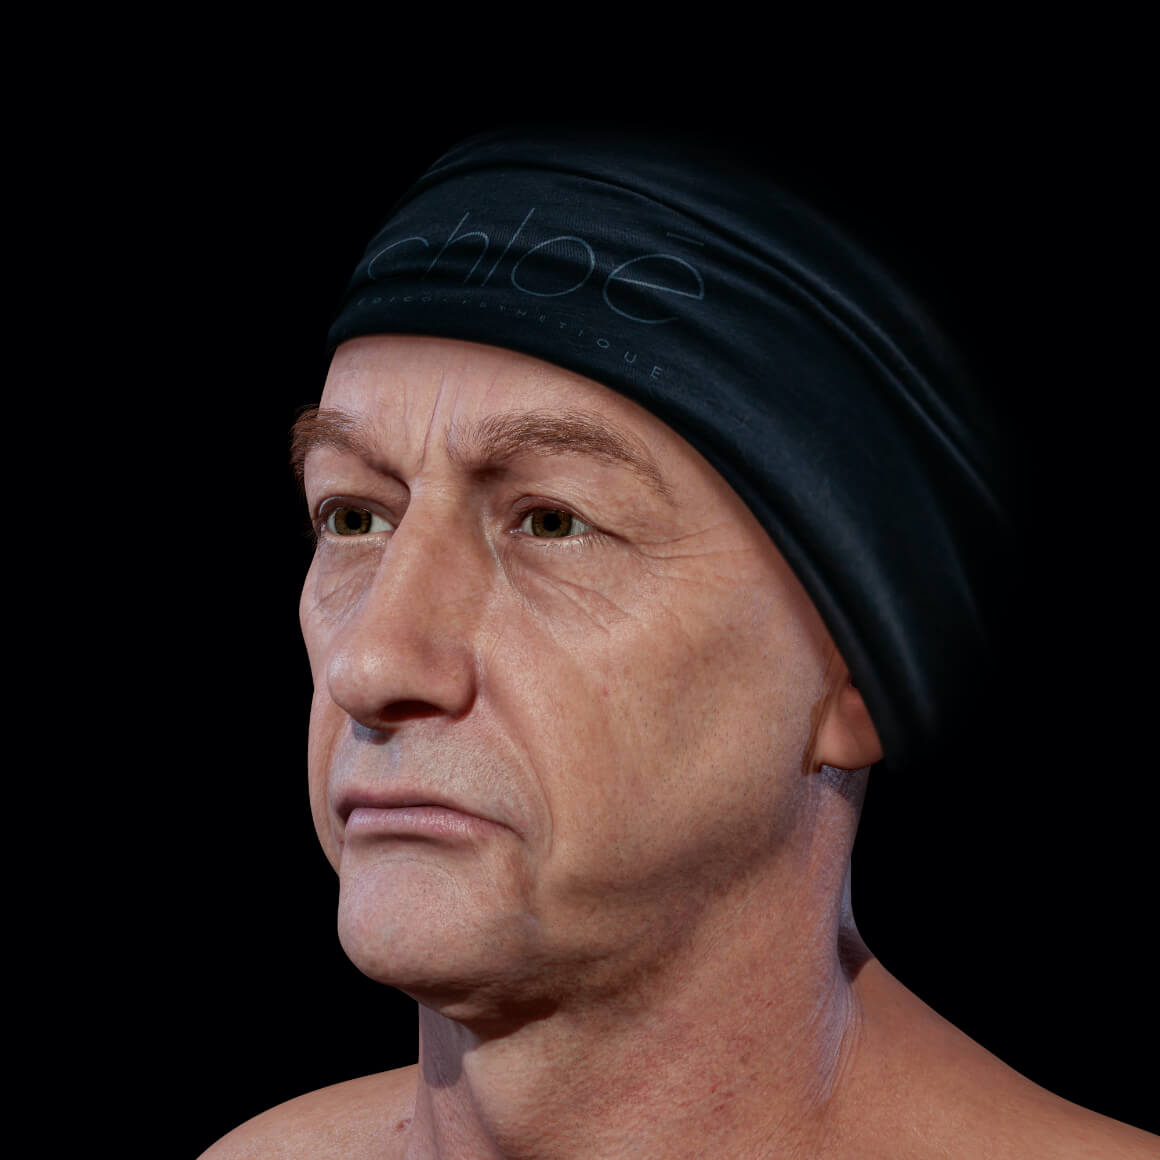 A male patient from Clinique Chloé positioned at an angle demonstrating a loss of facial skin firmness